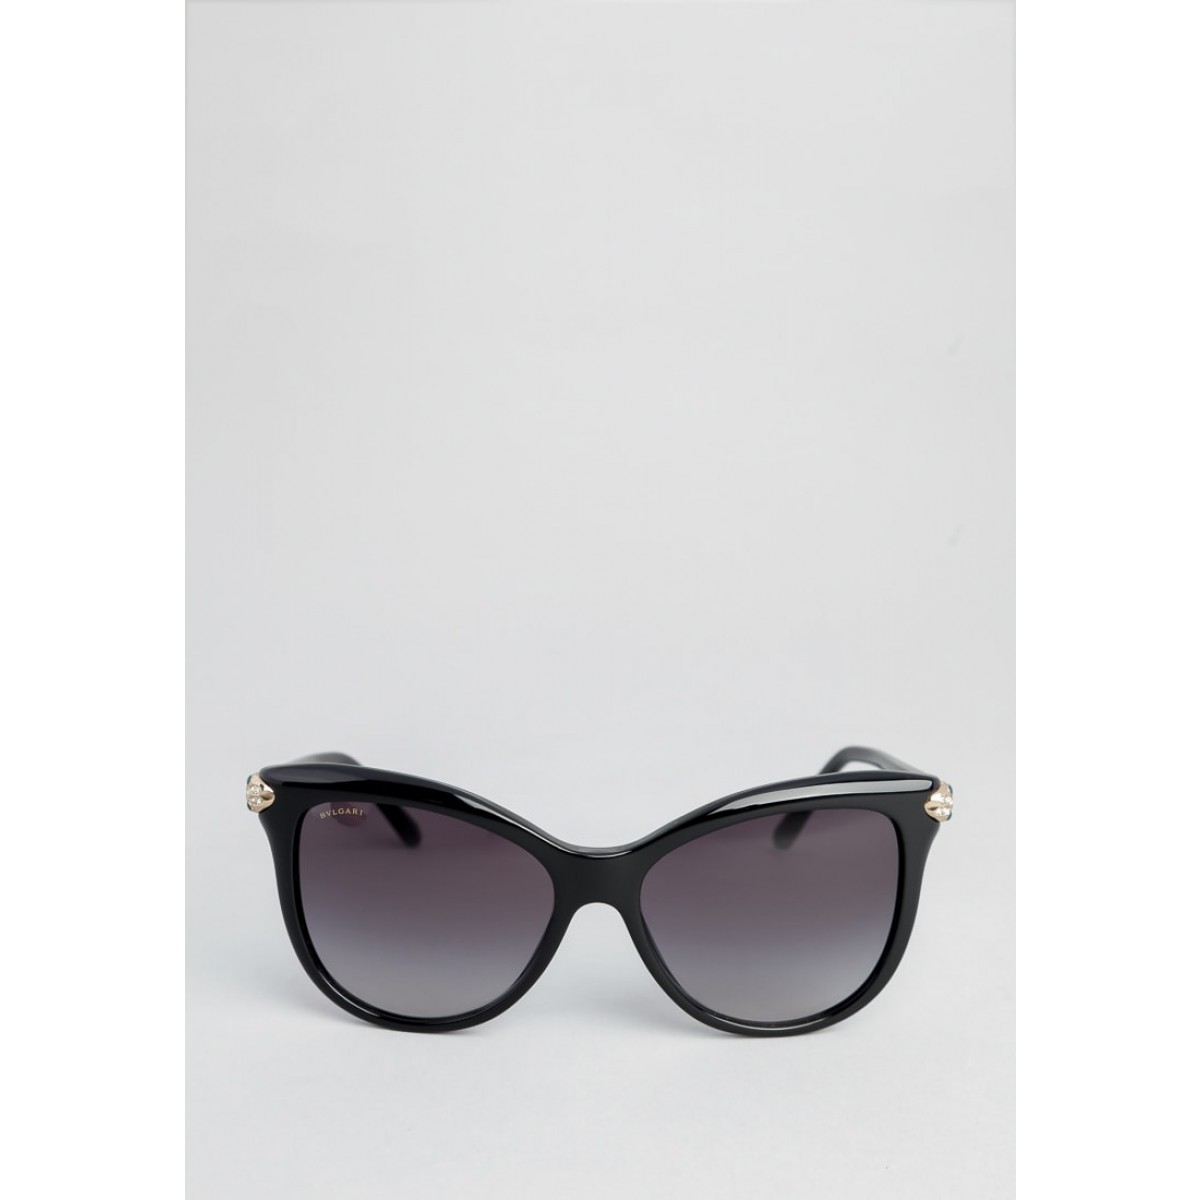 2cfd61ab5874 Bvlgari Black Square Women Sunglasses Bv8188b-501 8g-57. Be the first to  review this product